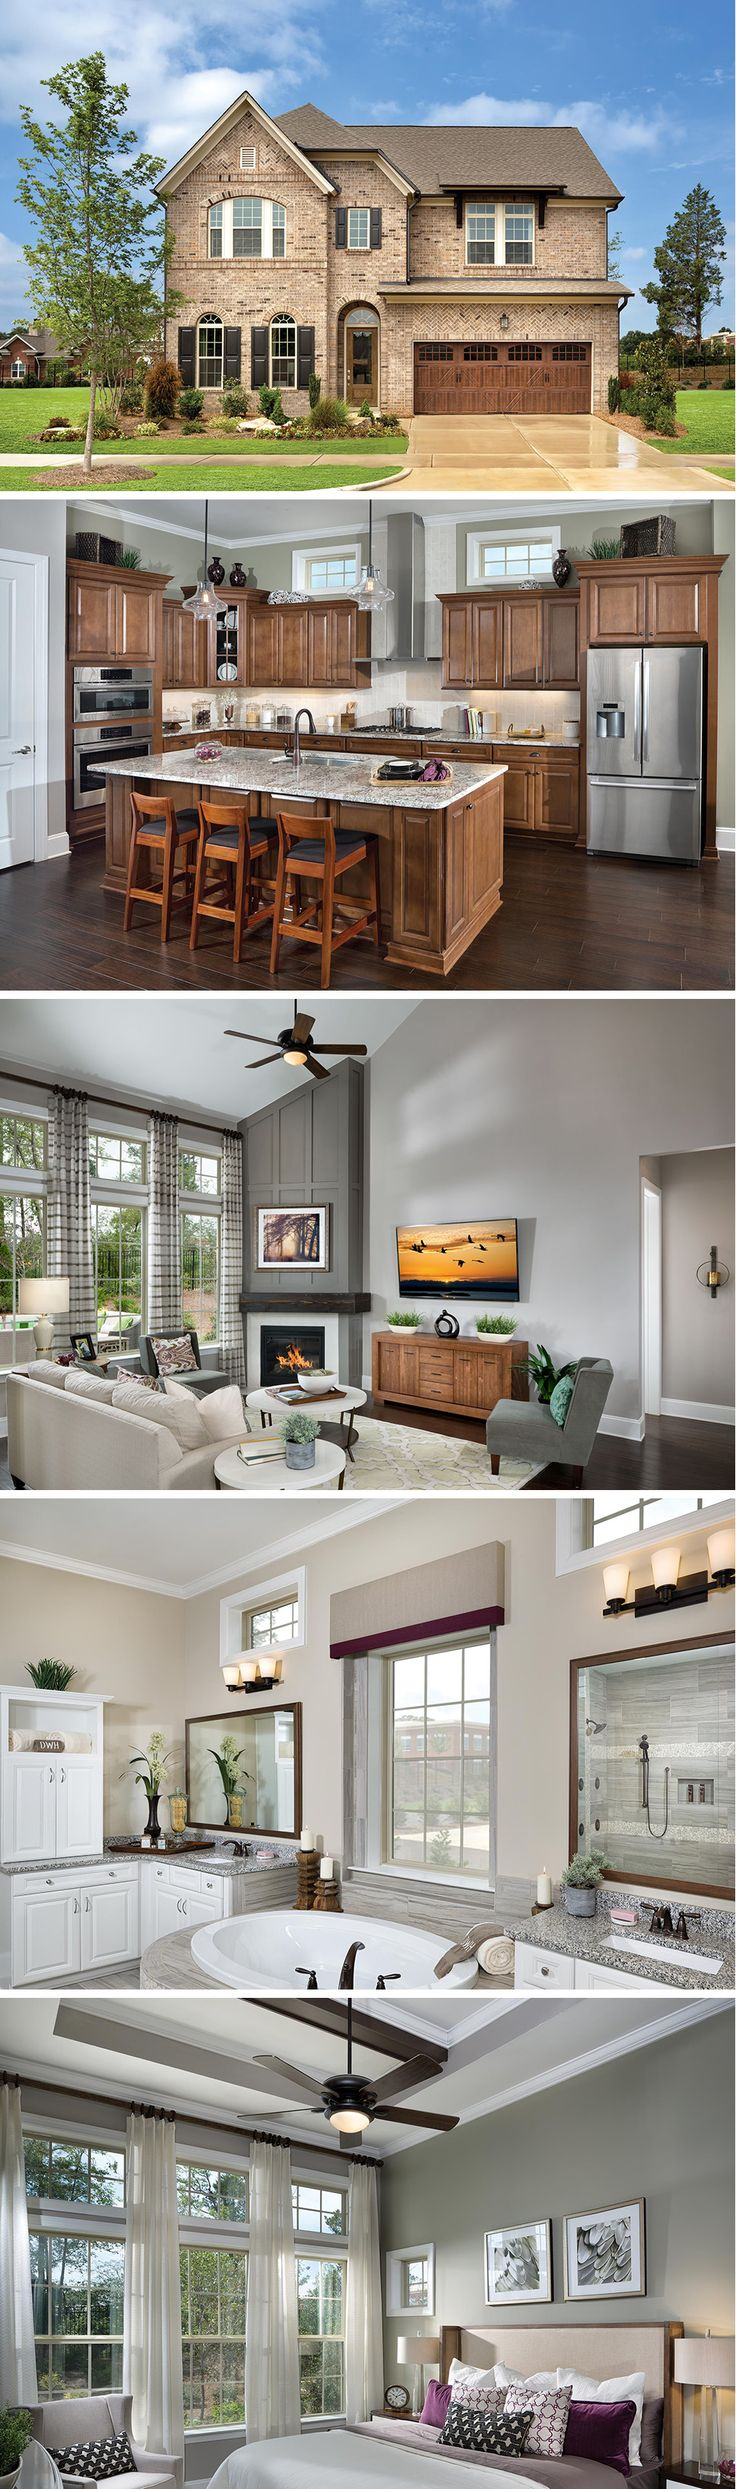 David Weekley Homes is now building award-winning homes in the South Charlotte community of Waverly Executive Collection, located at the intersection of Providence Road and Ardrey Kell Road. Situated among pocket parks and tree-lined streets, this 90-acre, pedestrian-friendly community features executive homes with a mix of traditional, craftsman and European architecture.